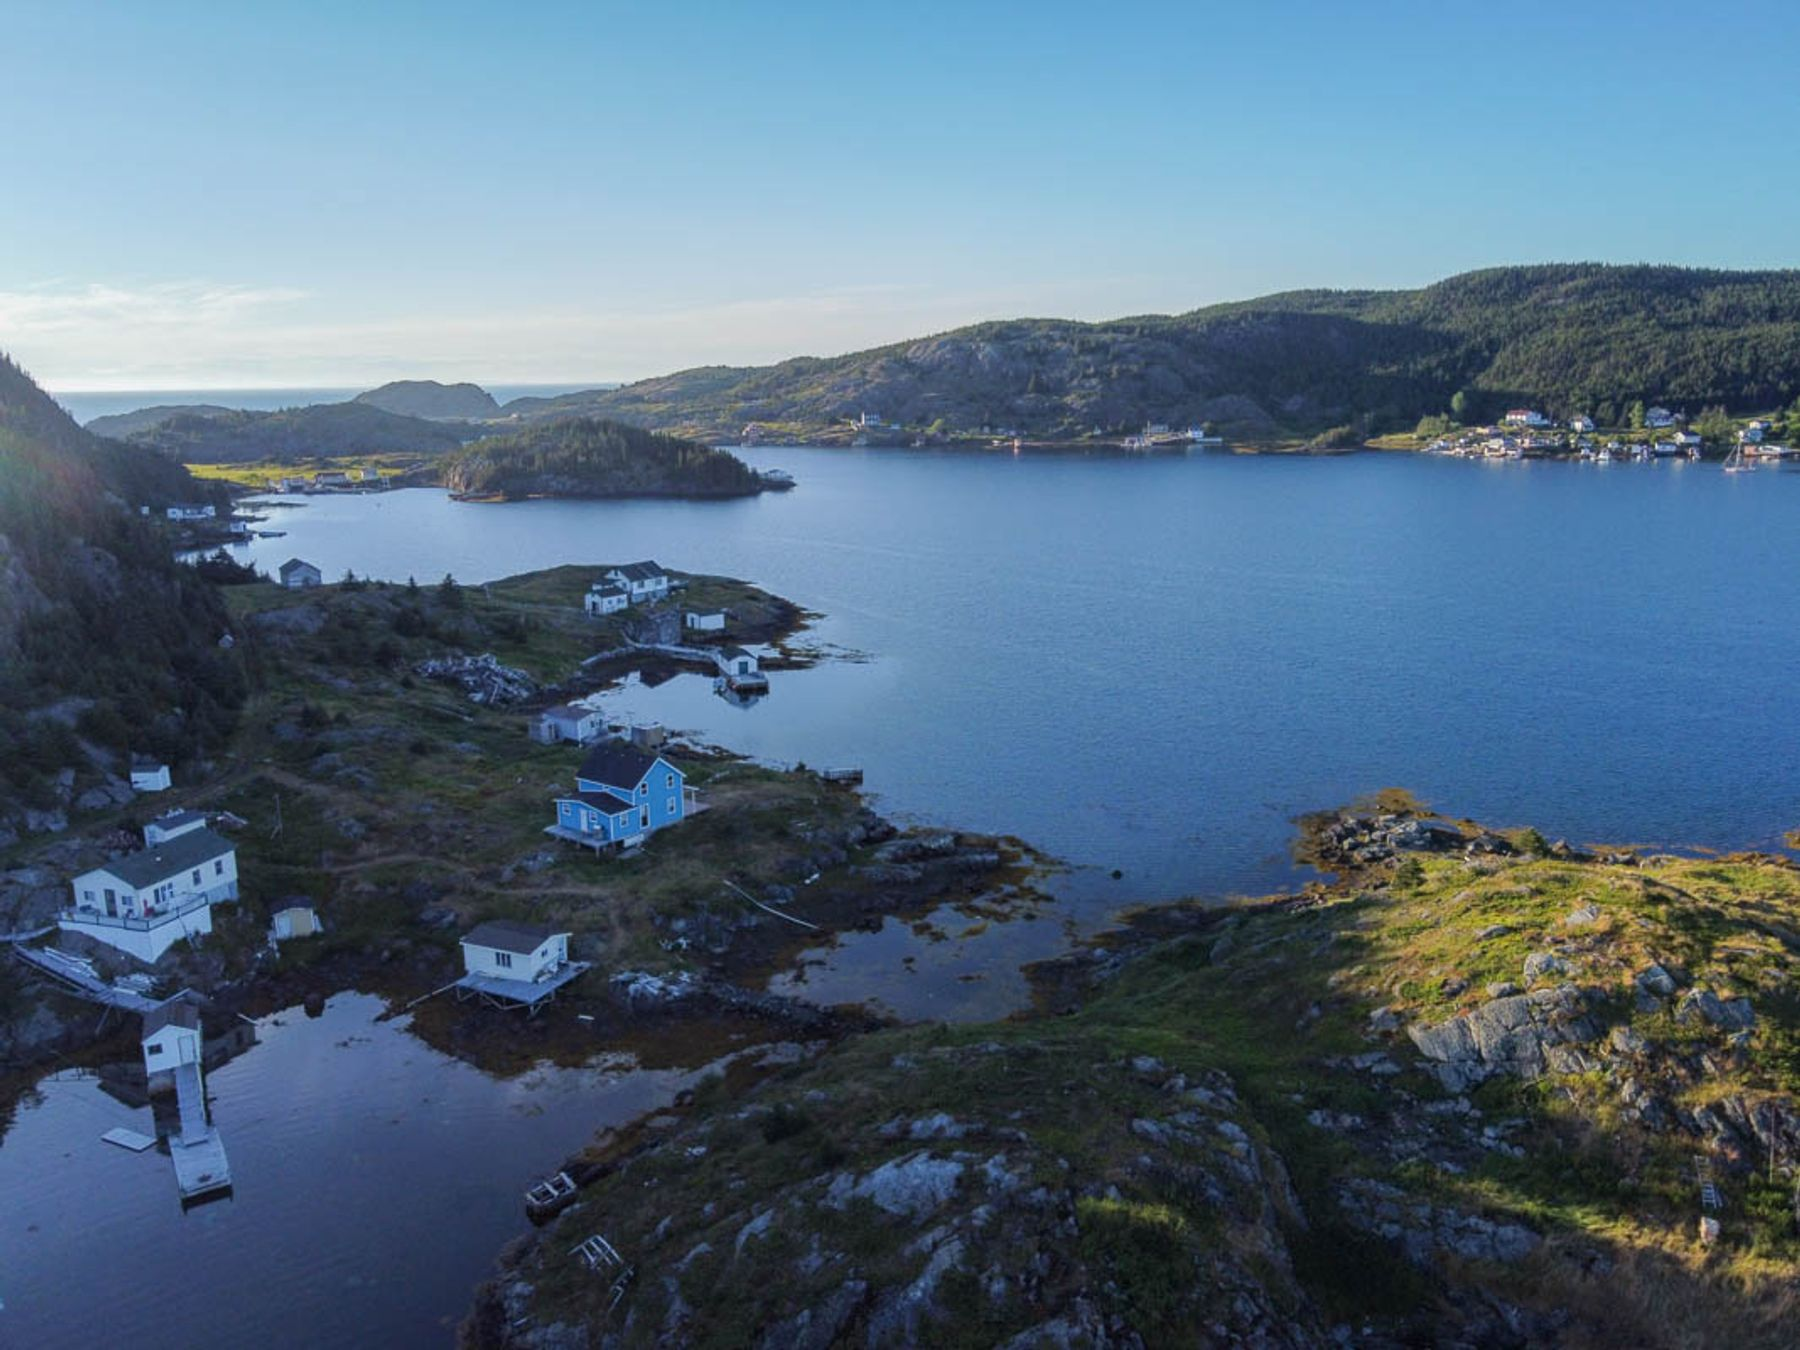 afternoon bird's eye view of the Bay of Exploits in central Newfoundland